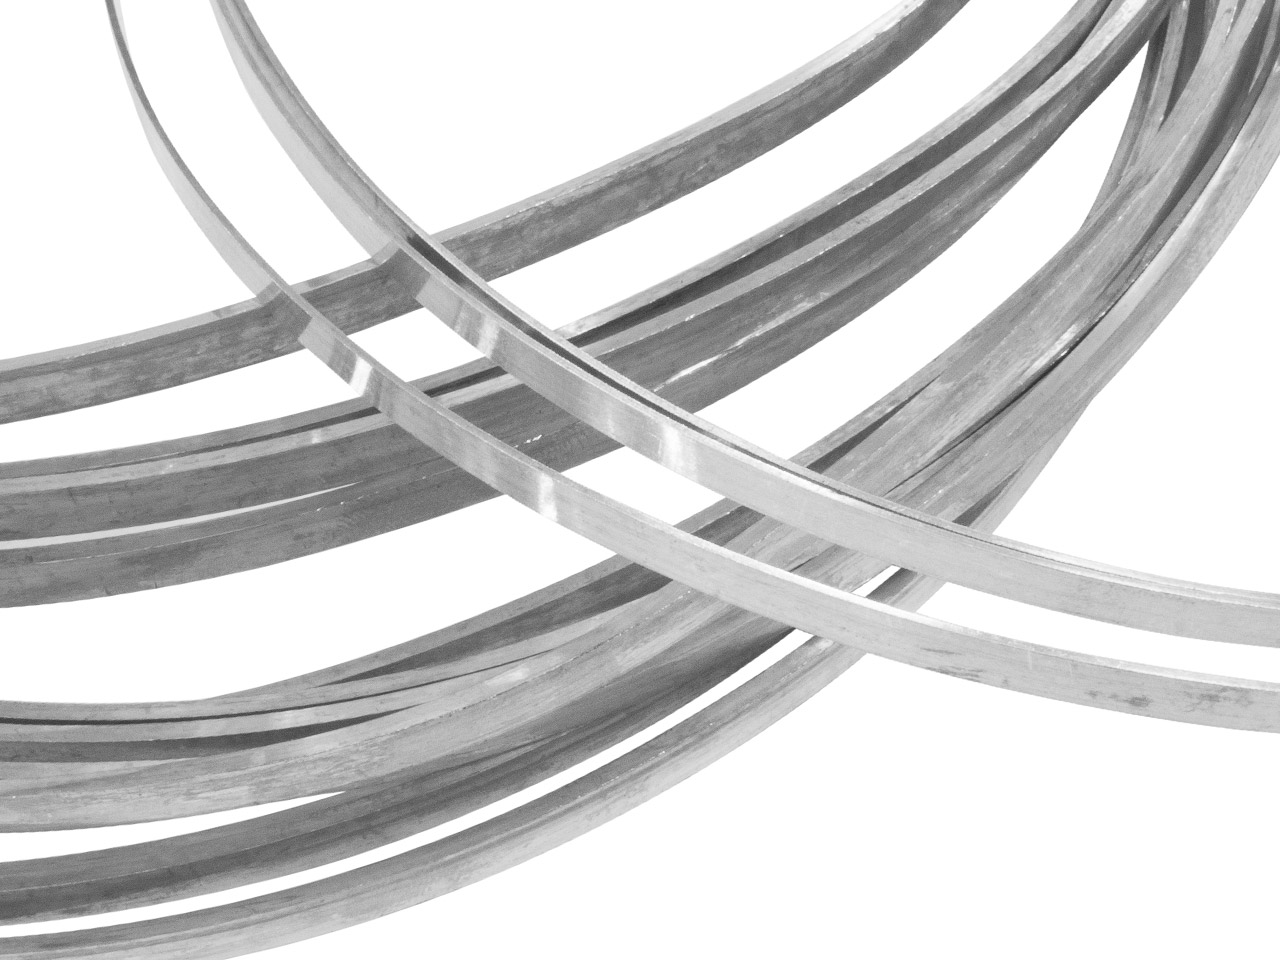 Sterling Silver Rectangular Wire 3.20mm X 1.60mm - cooksongold.com